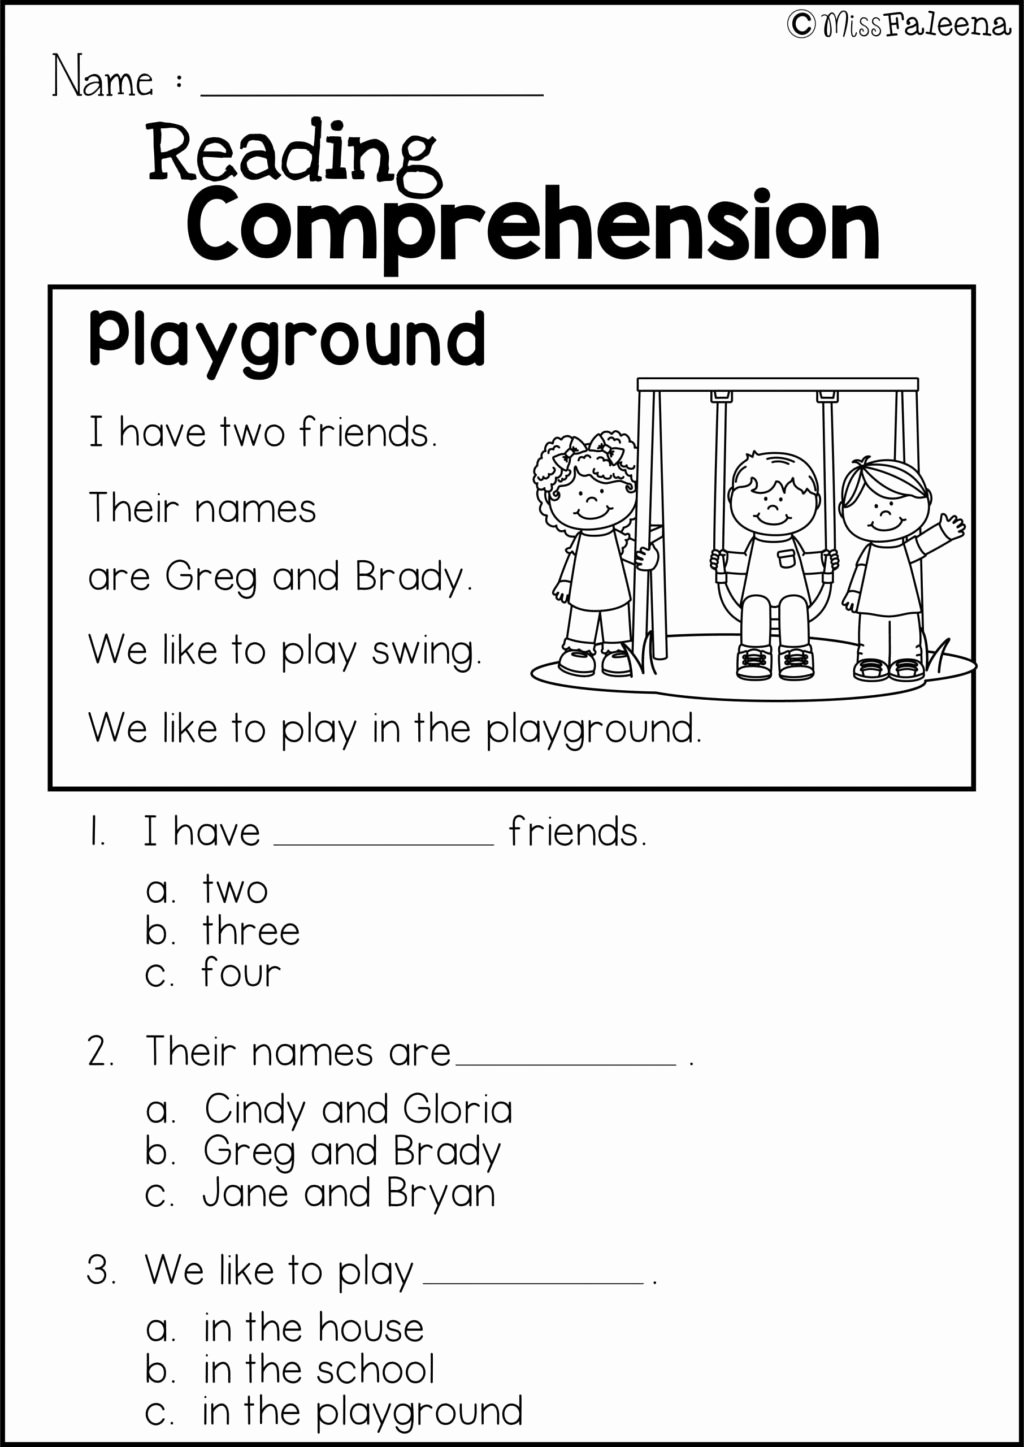 Free First Grade Reading Worksheets Ideas Worksheet Printable Worksheets for First Gradee Practice